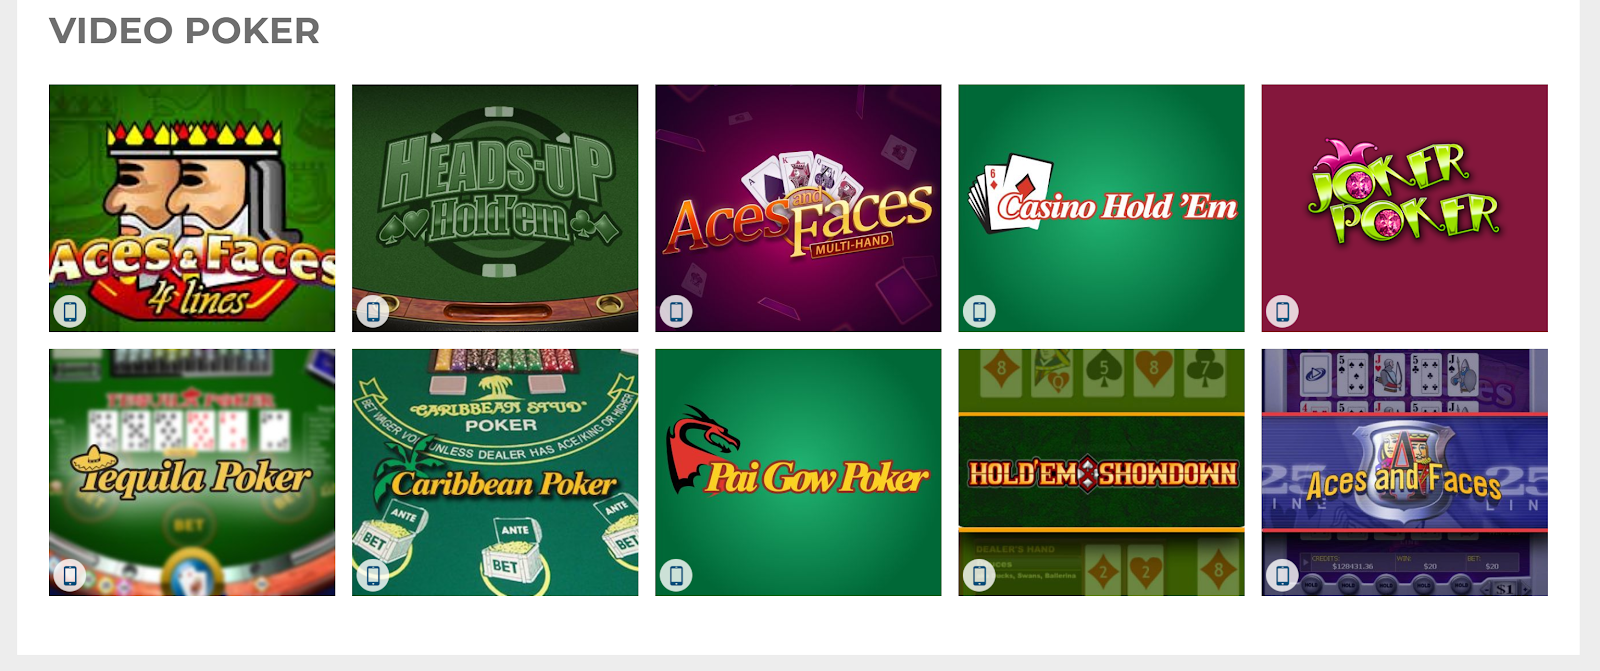 You can play plenty of great poker games at The Sun Vegas Casino